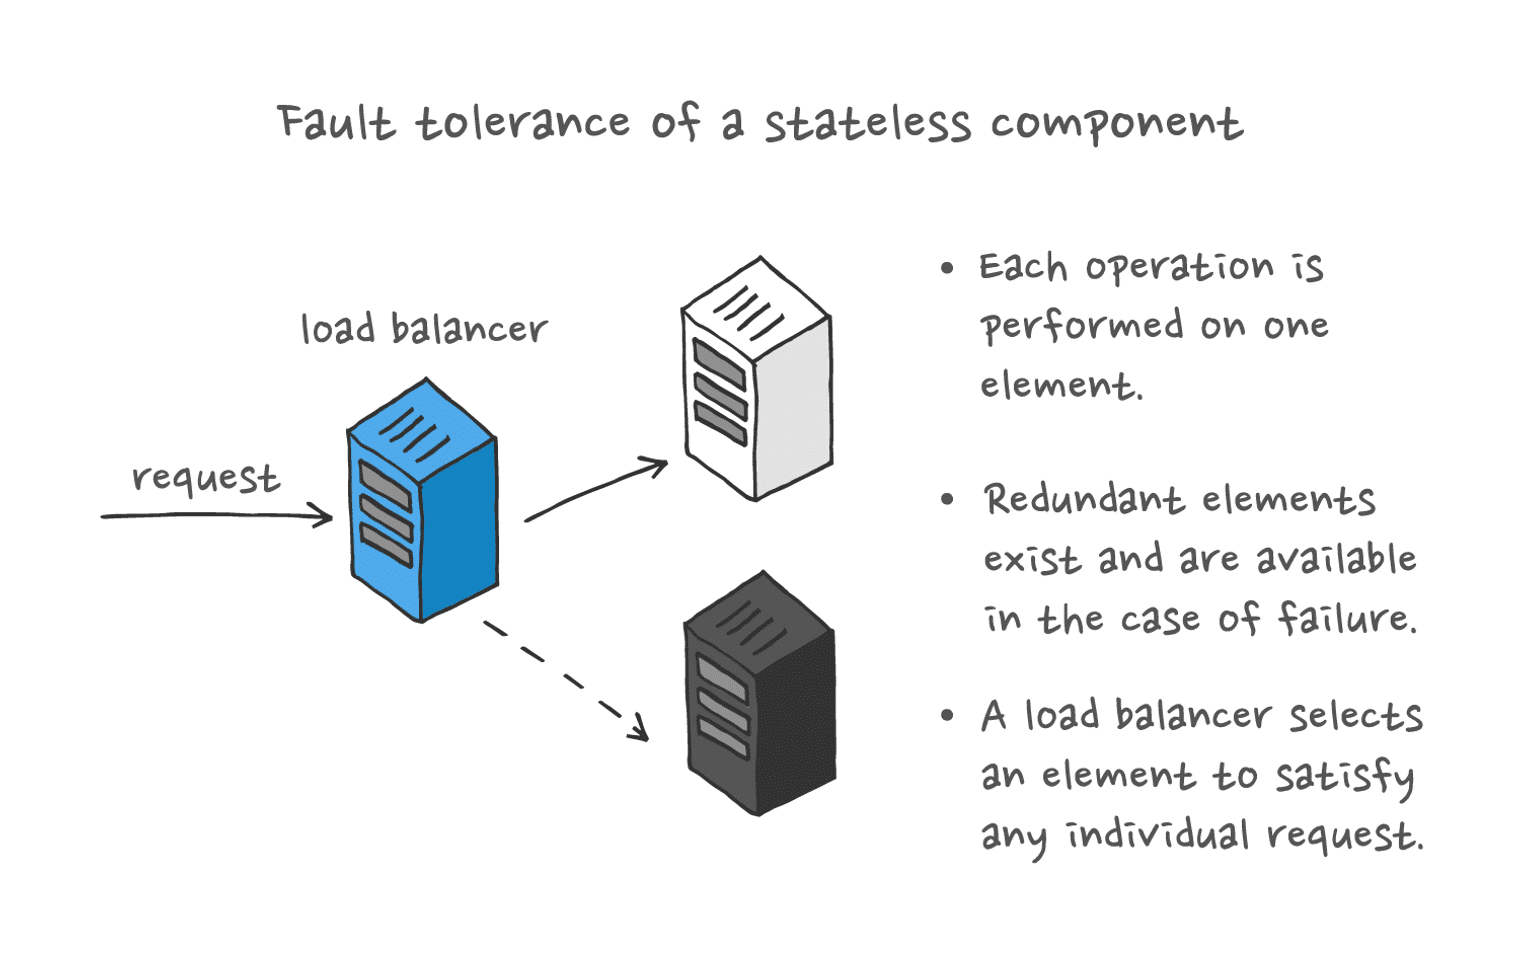 Fault tolerant design of stateless components: a load balancer receives a request and selects an element to satisfy the request.